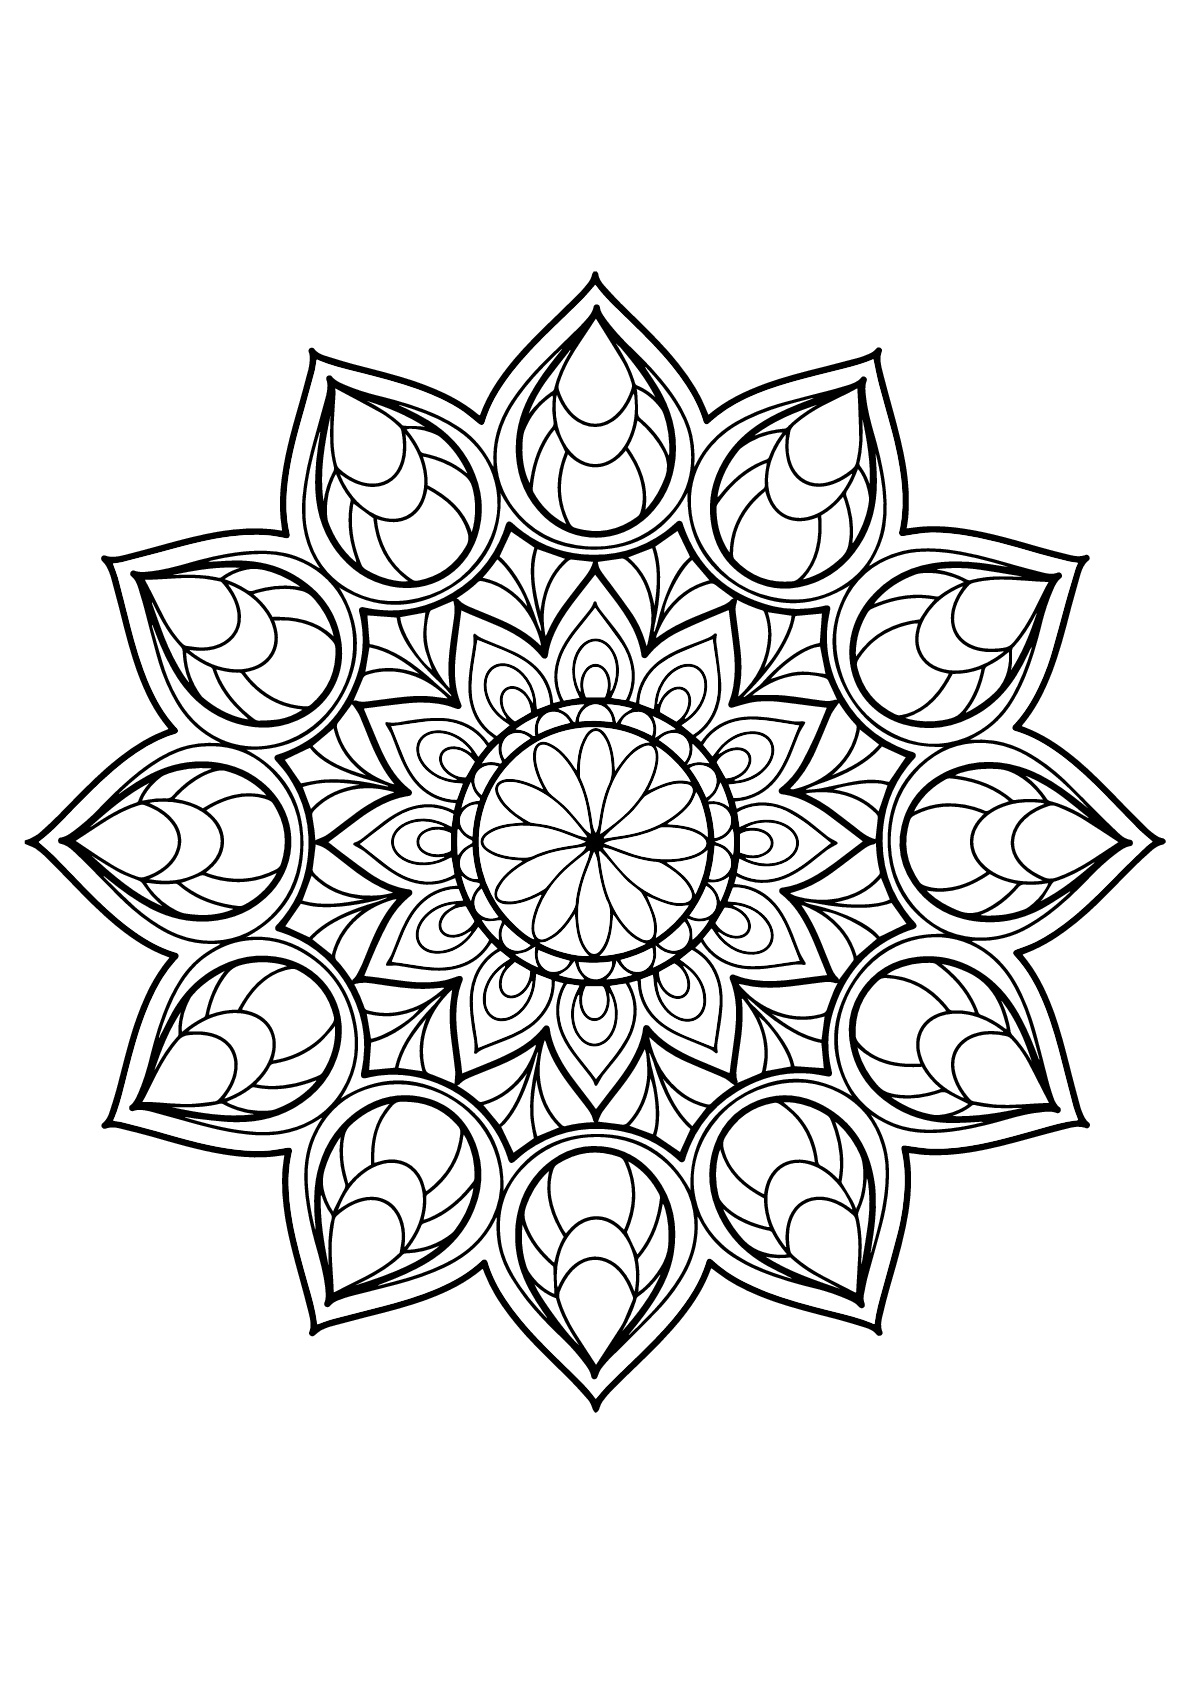 Coloring Pages : Mandala From Free Coloring Books For Adults pour Mandala Fée